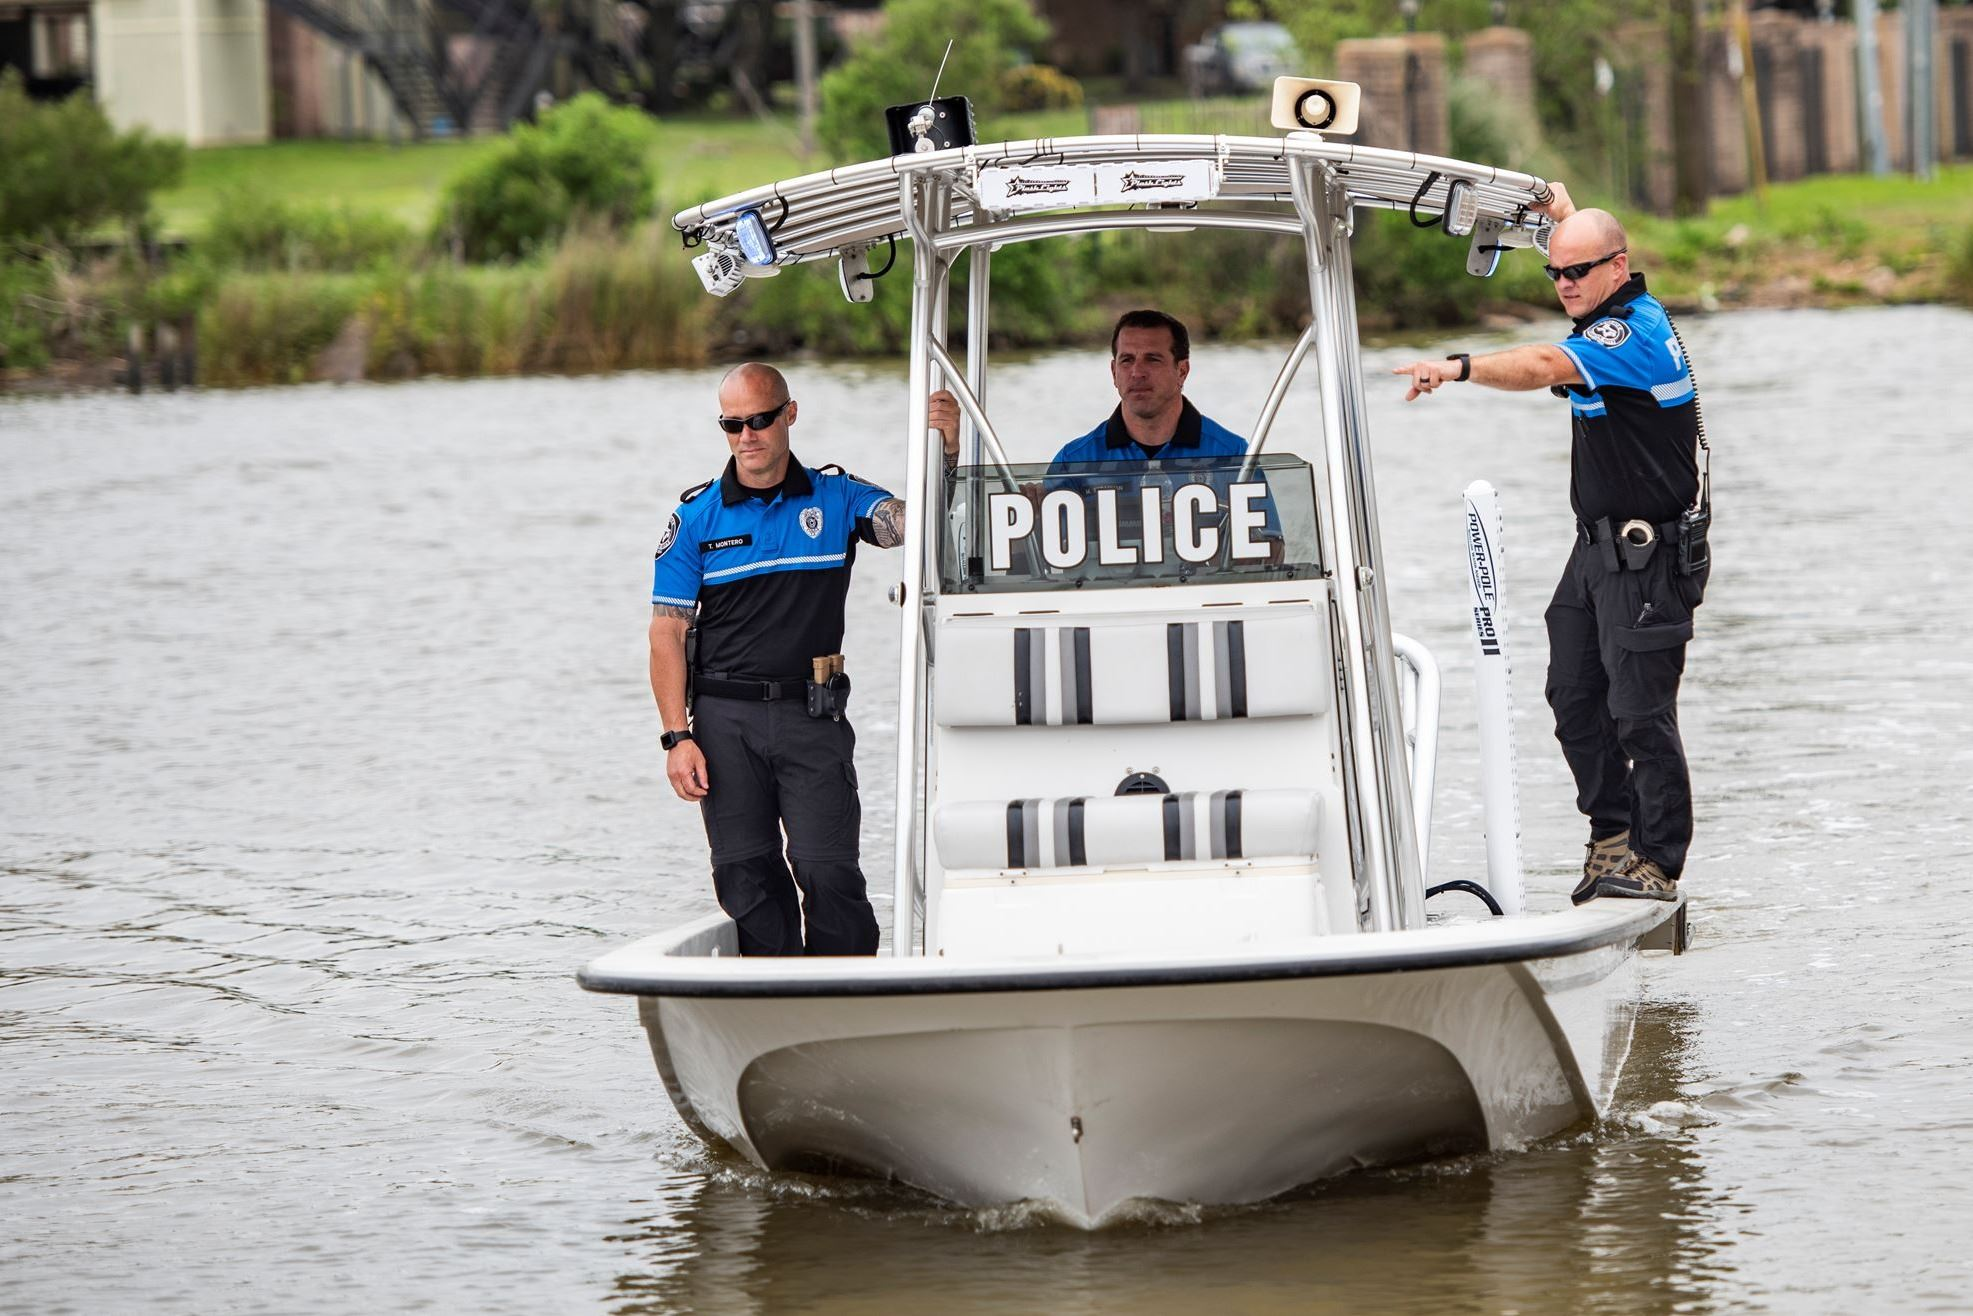 3 police officers on a boat